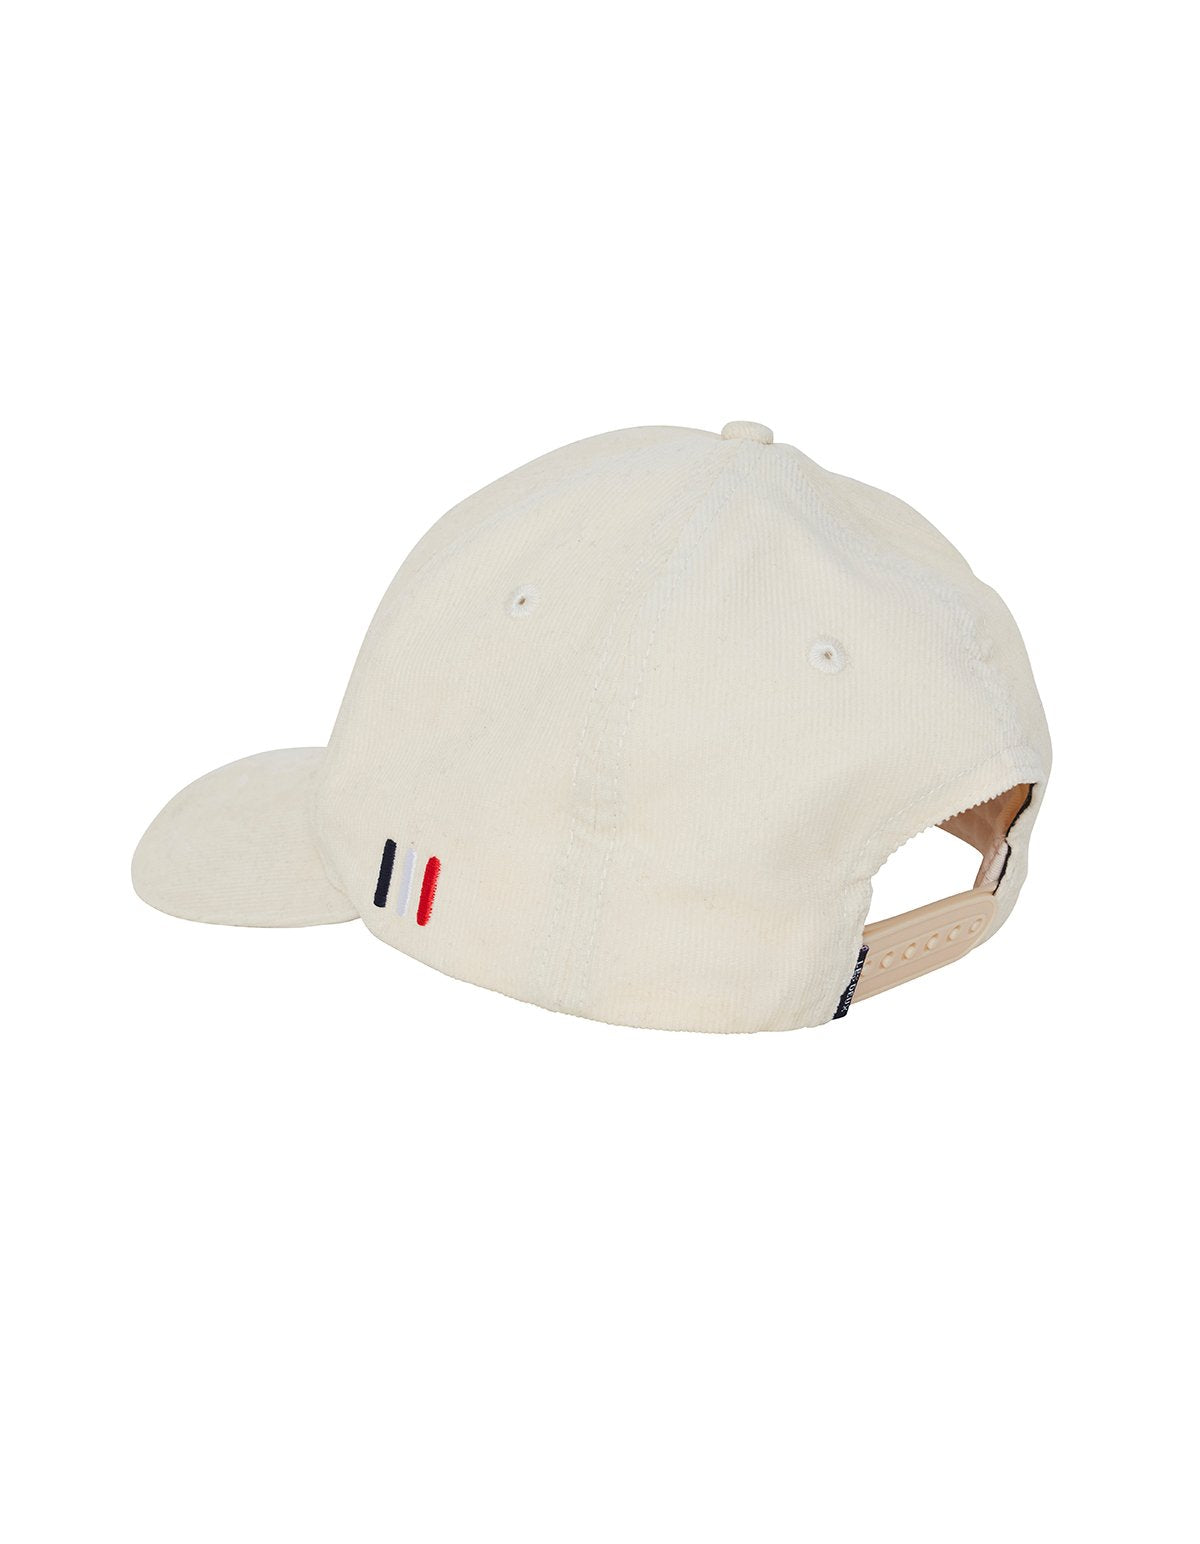 Les deux piece fine baseball cap off white black